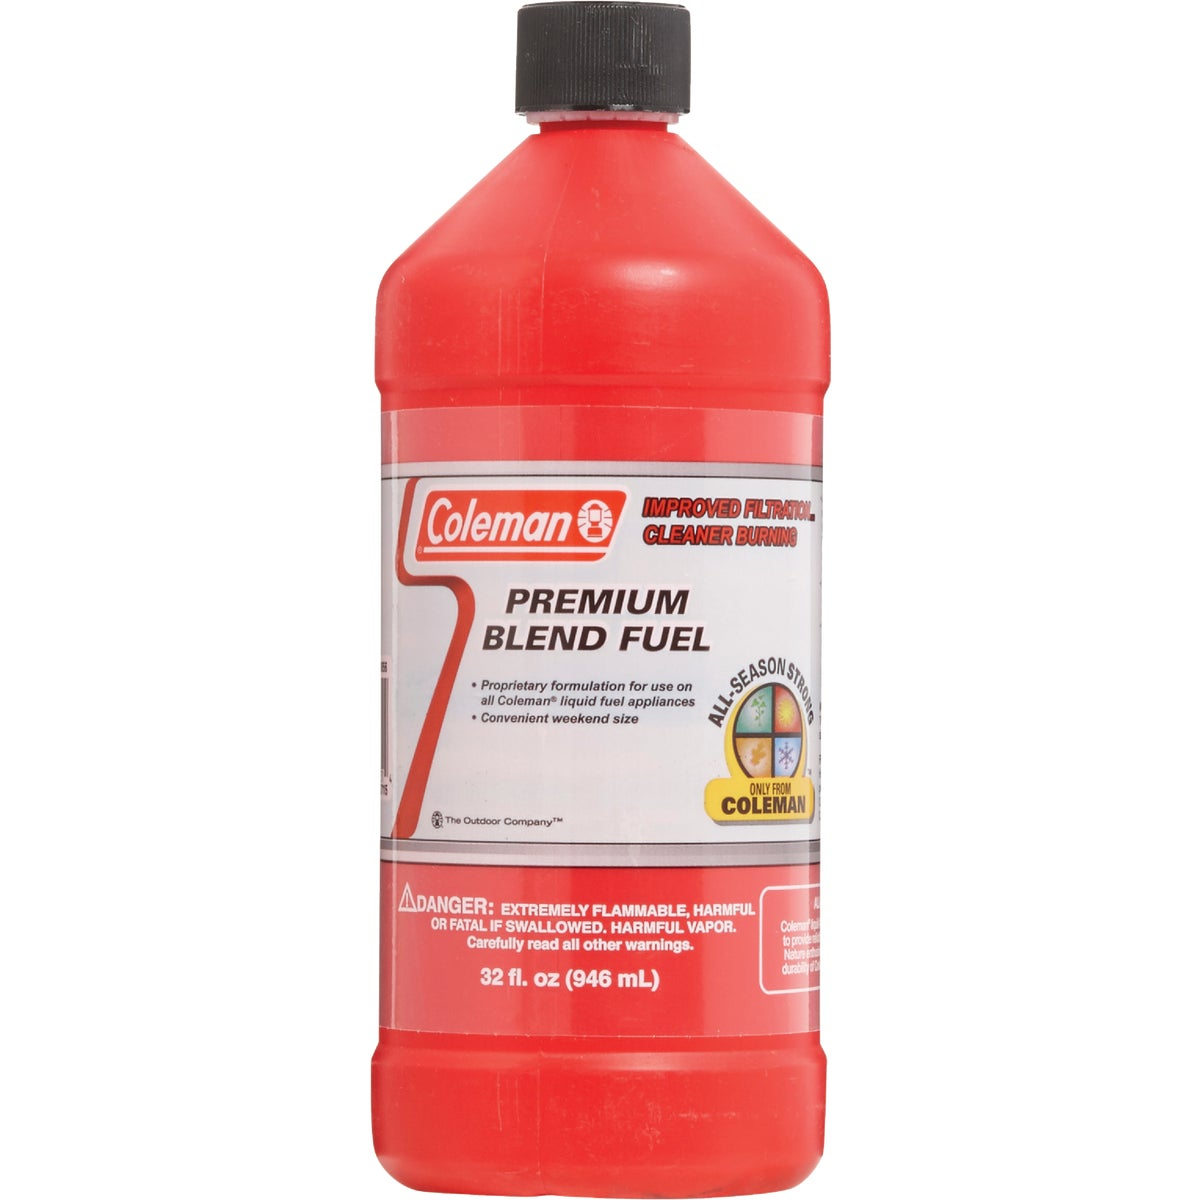 1 QUART LIQUID FUEL - 2000007115 by Coleman